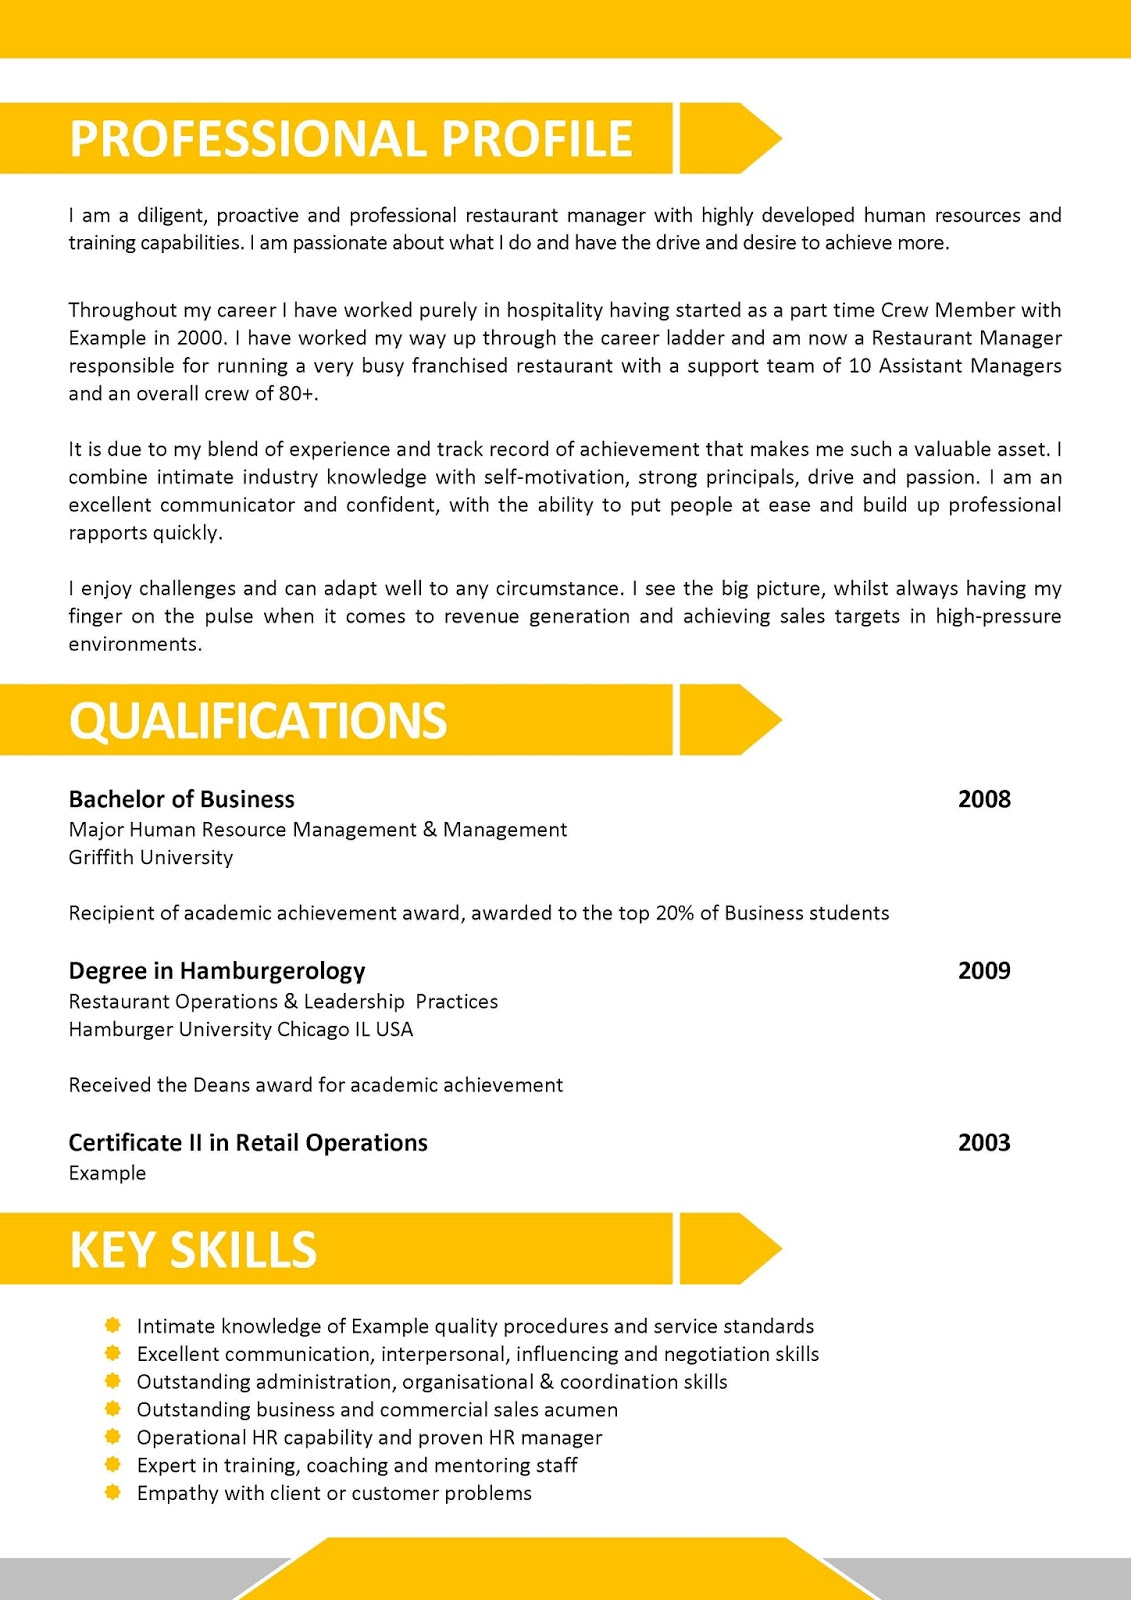 Free Resume Templates For Word 2010 Word Resume Writing With Resume Templates  Dadakan Education Part Of Resume with College Student Resume For Internship Excel Resume Writing With Resume Templates How To Make A General Resume